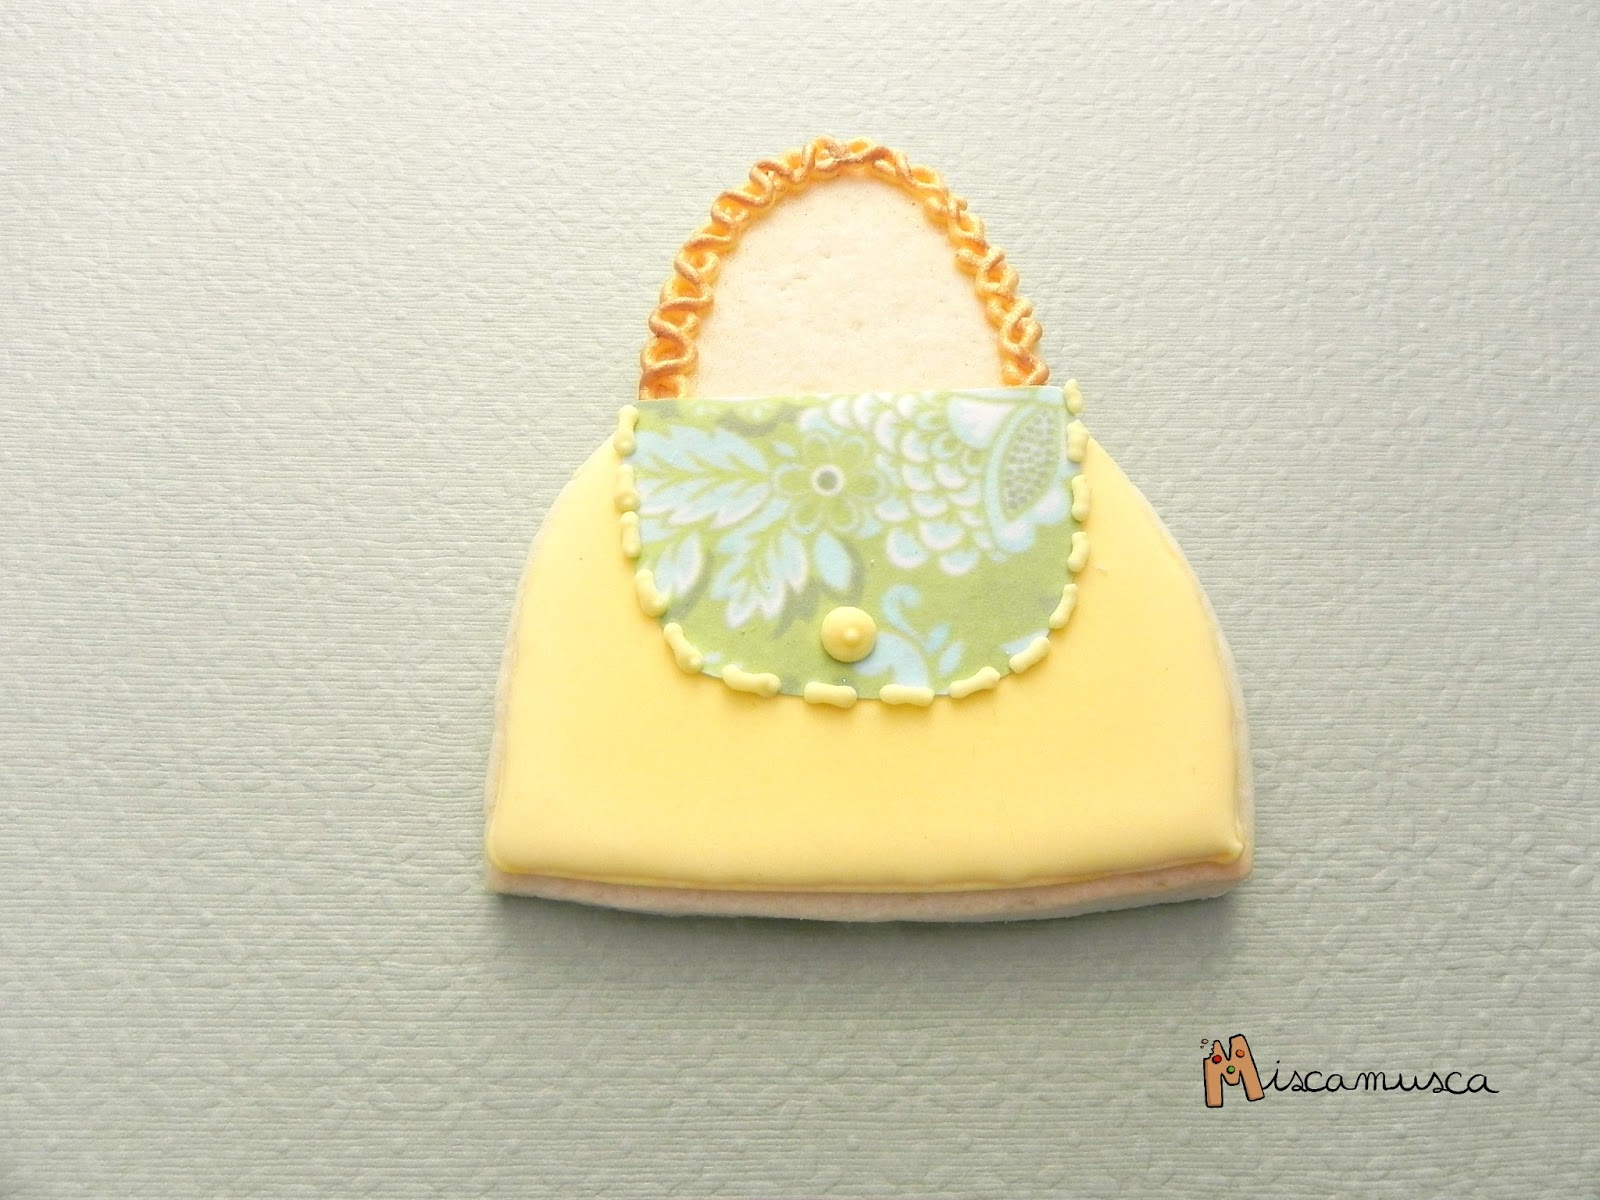 Galleta bolso moda